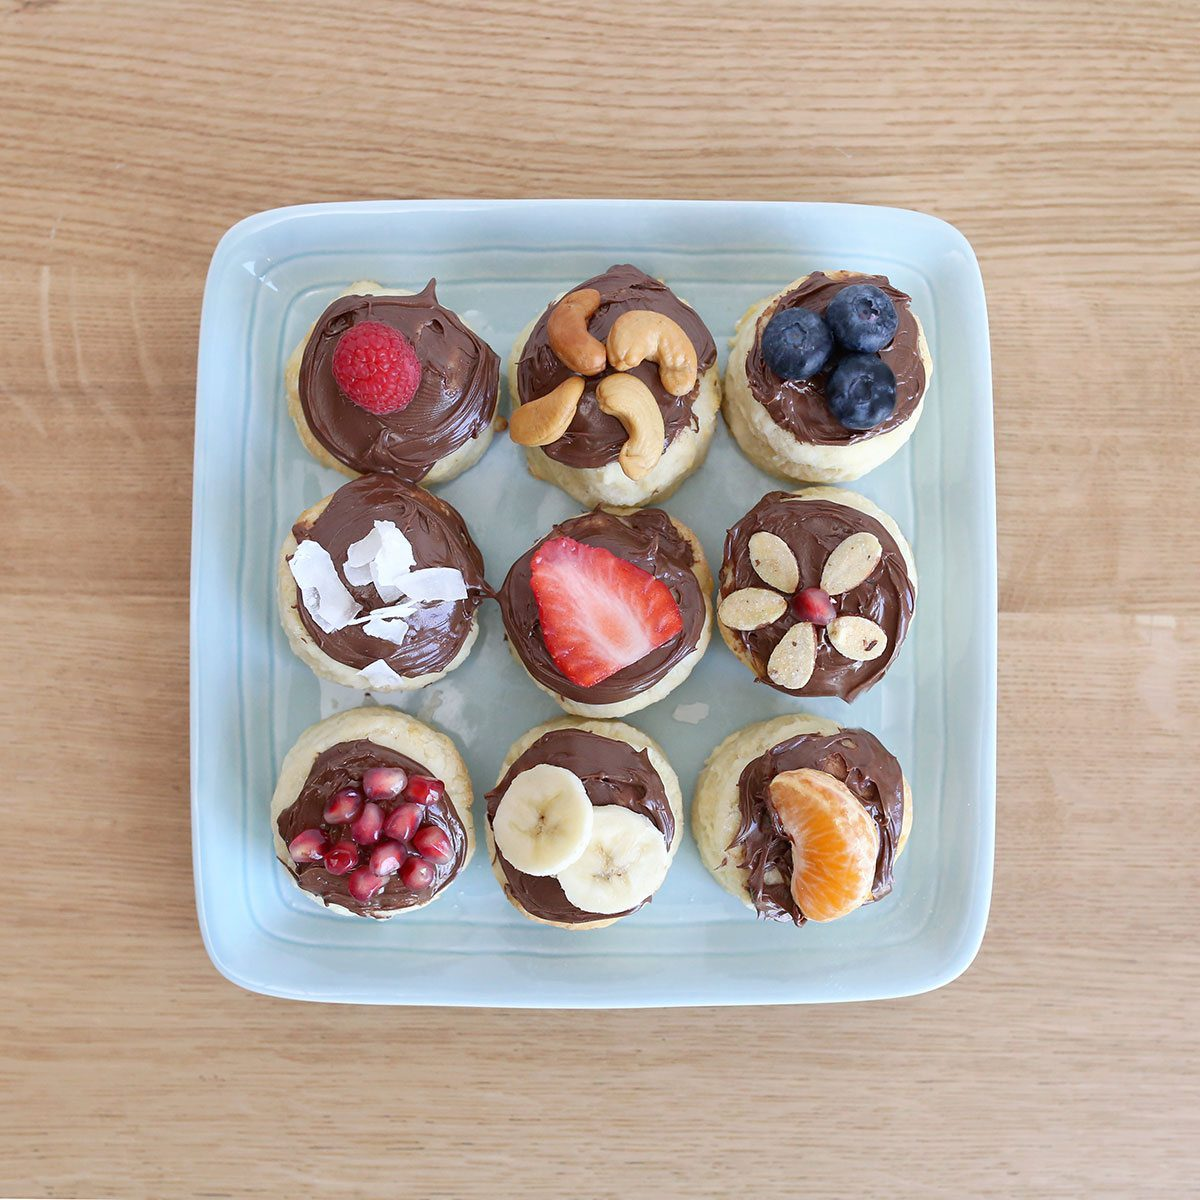 Plate of biscuits with fruit and Nutella on top